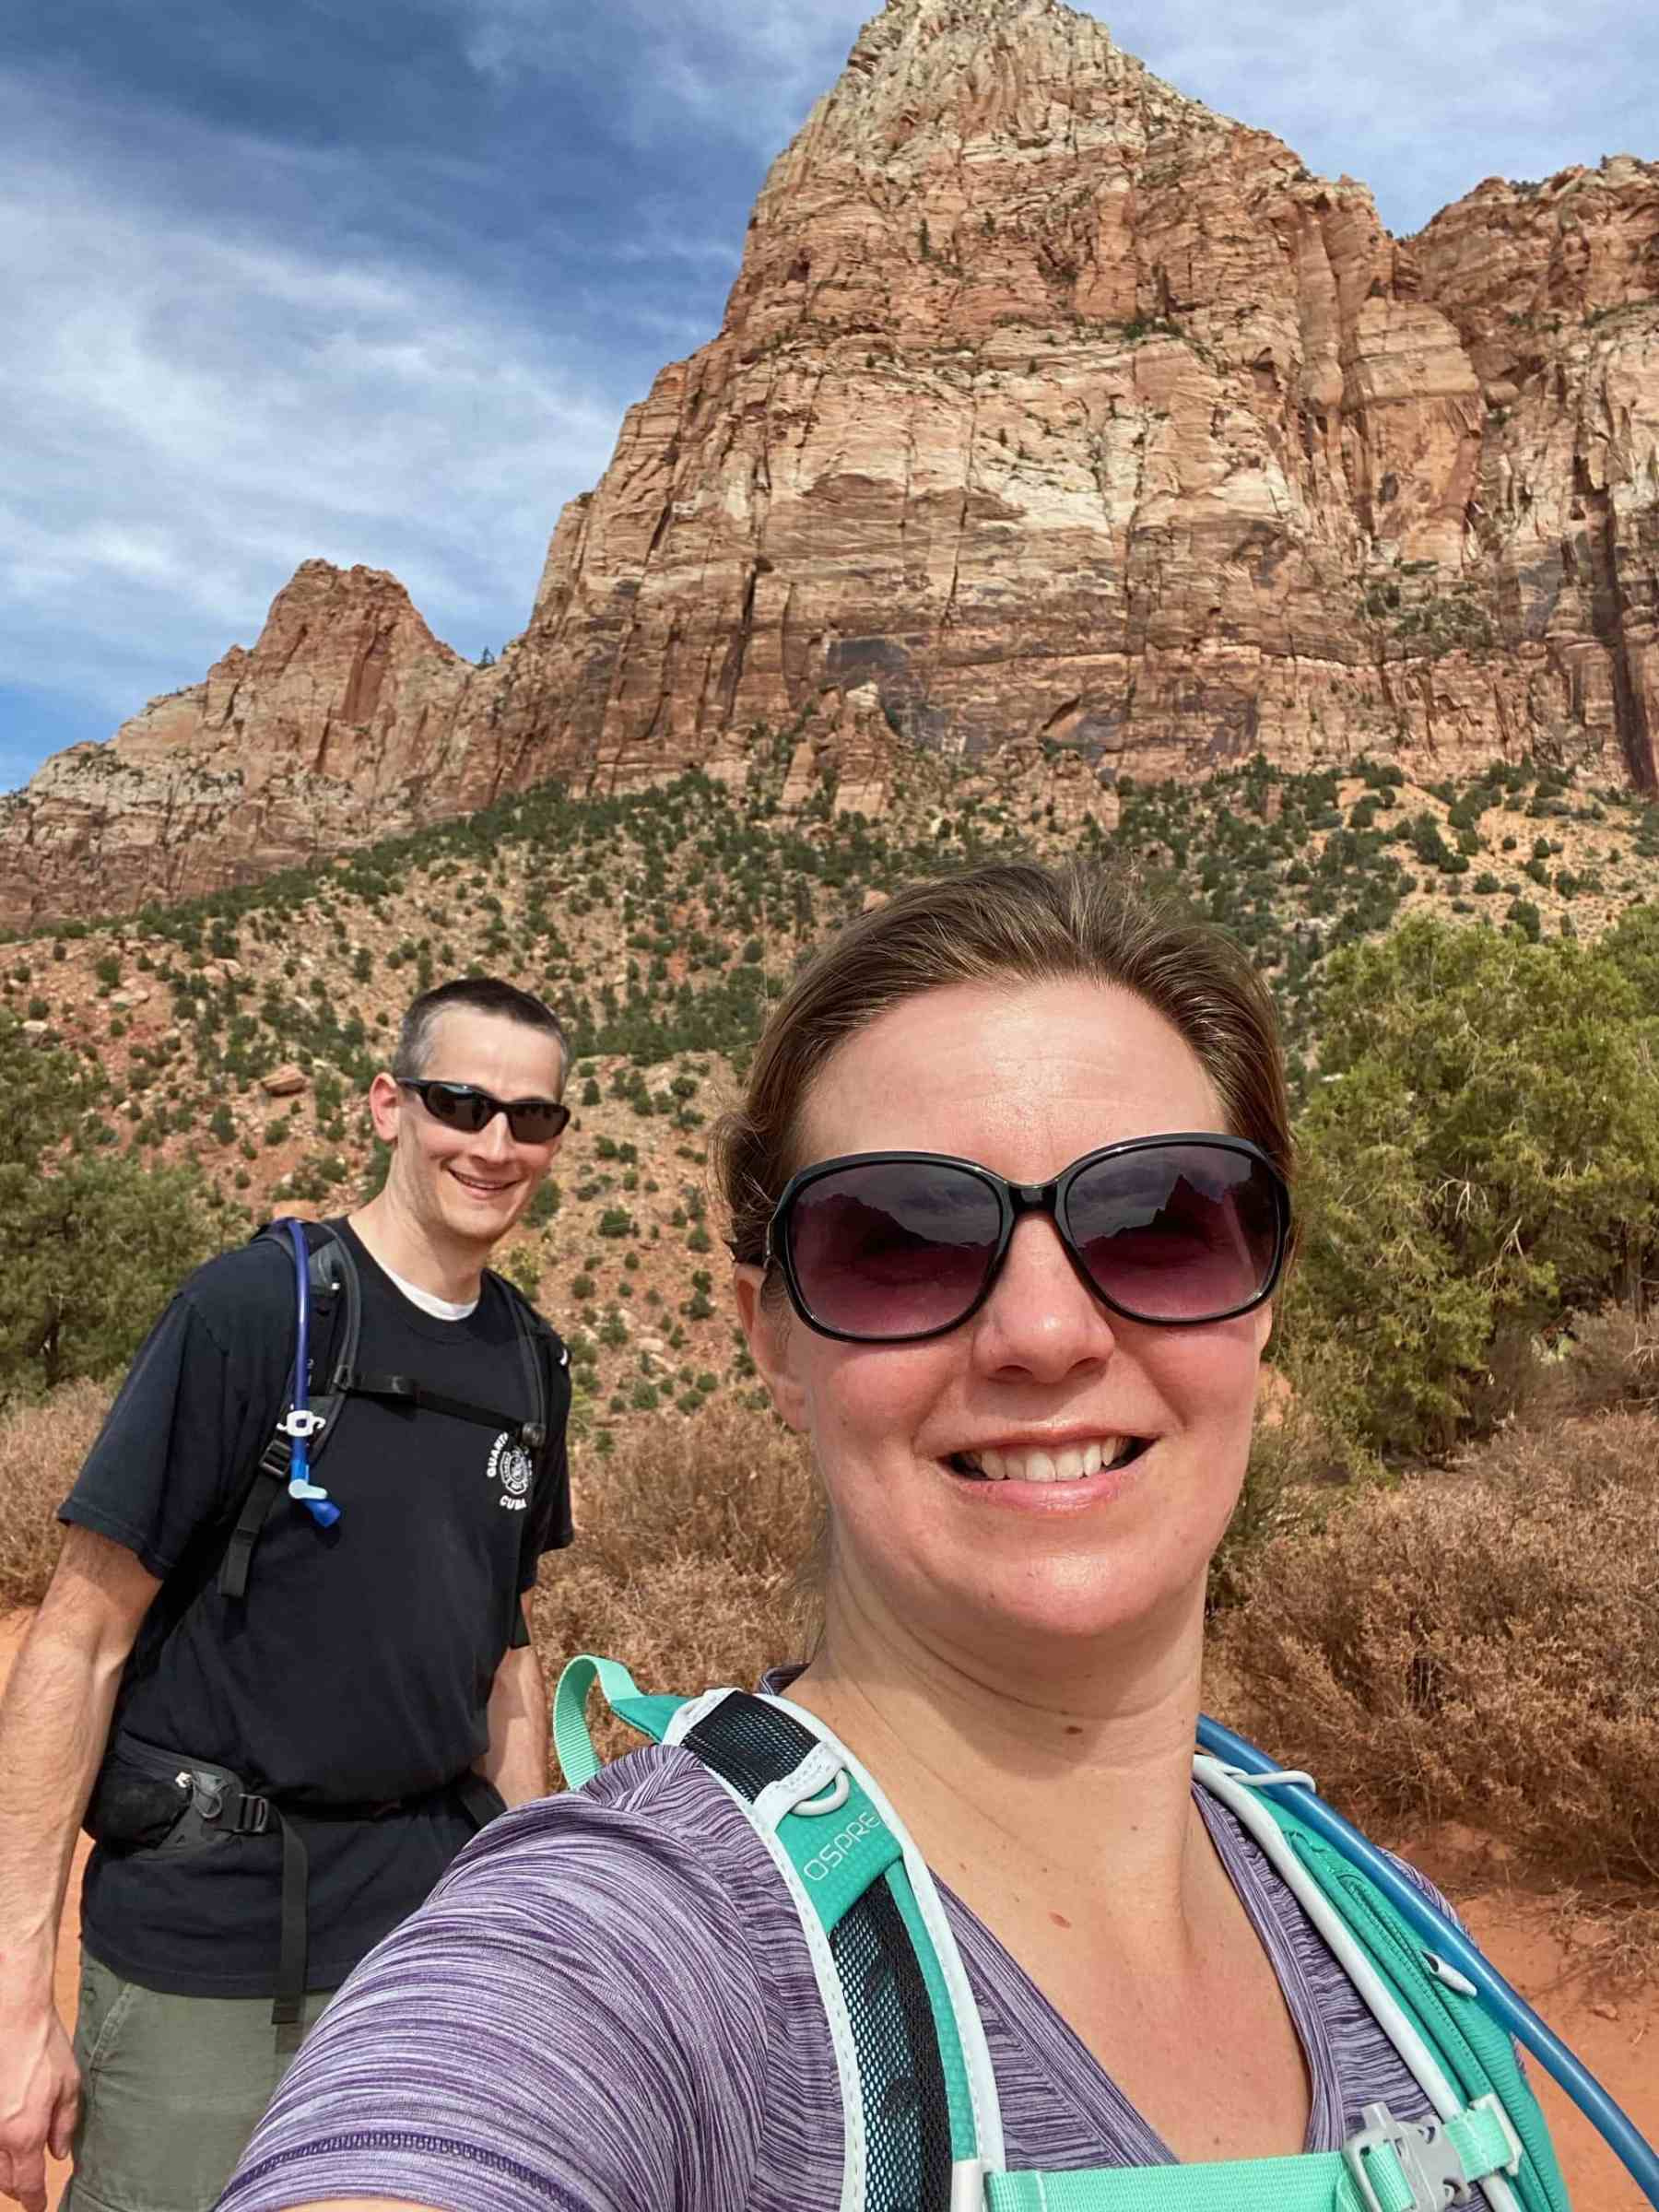 Very happy with our first visit to Zion National Park